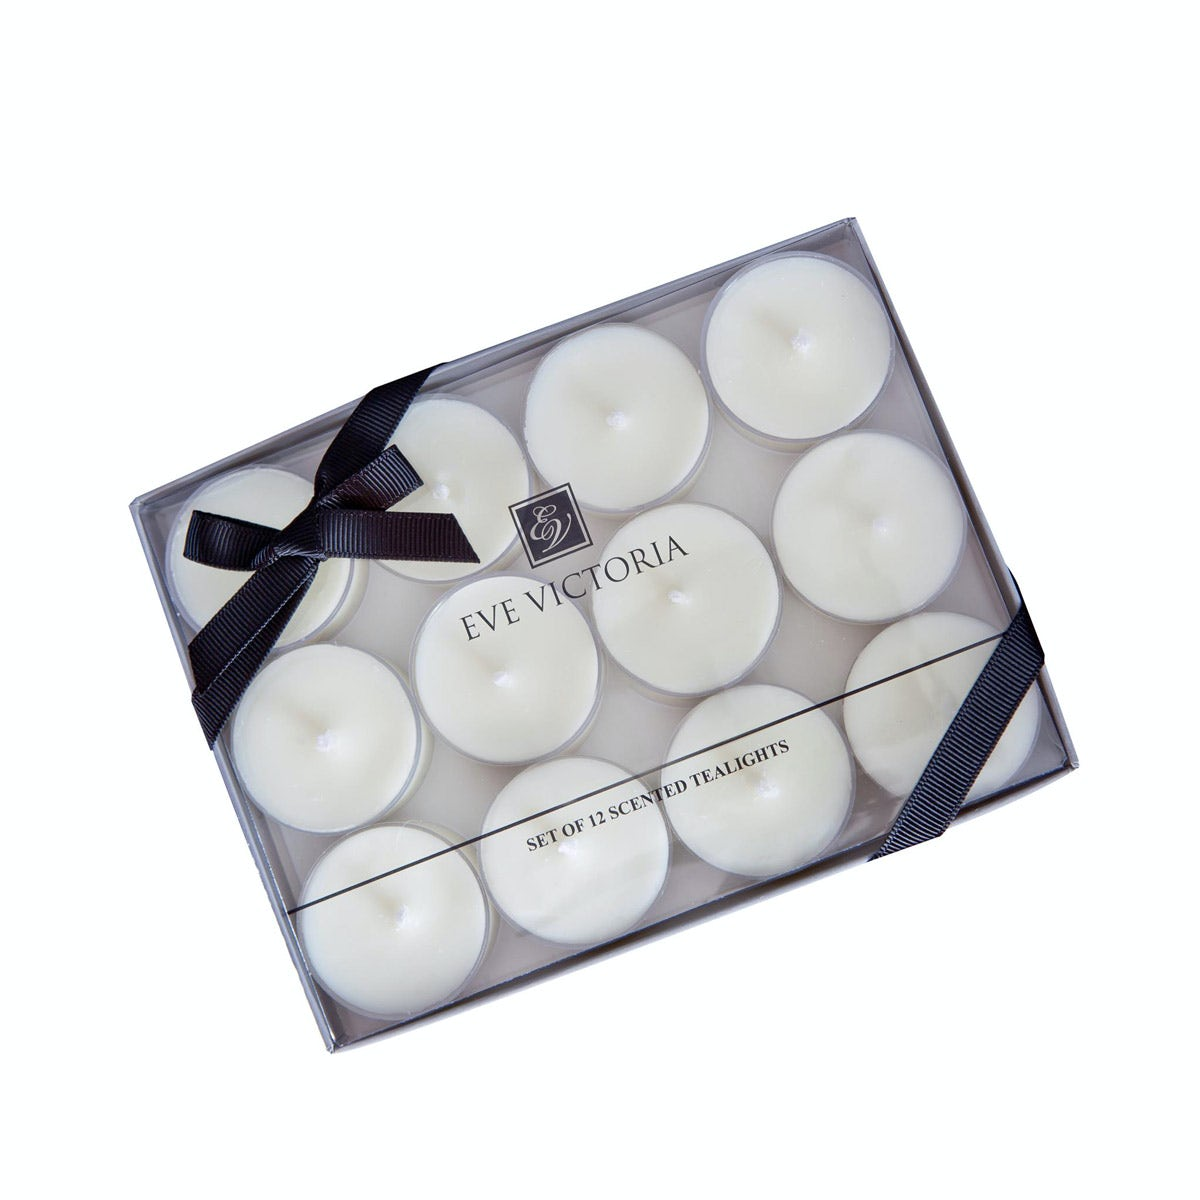 Eve Victoria Geranium, grapefruit & patchouli box of 12 tea lights